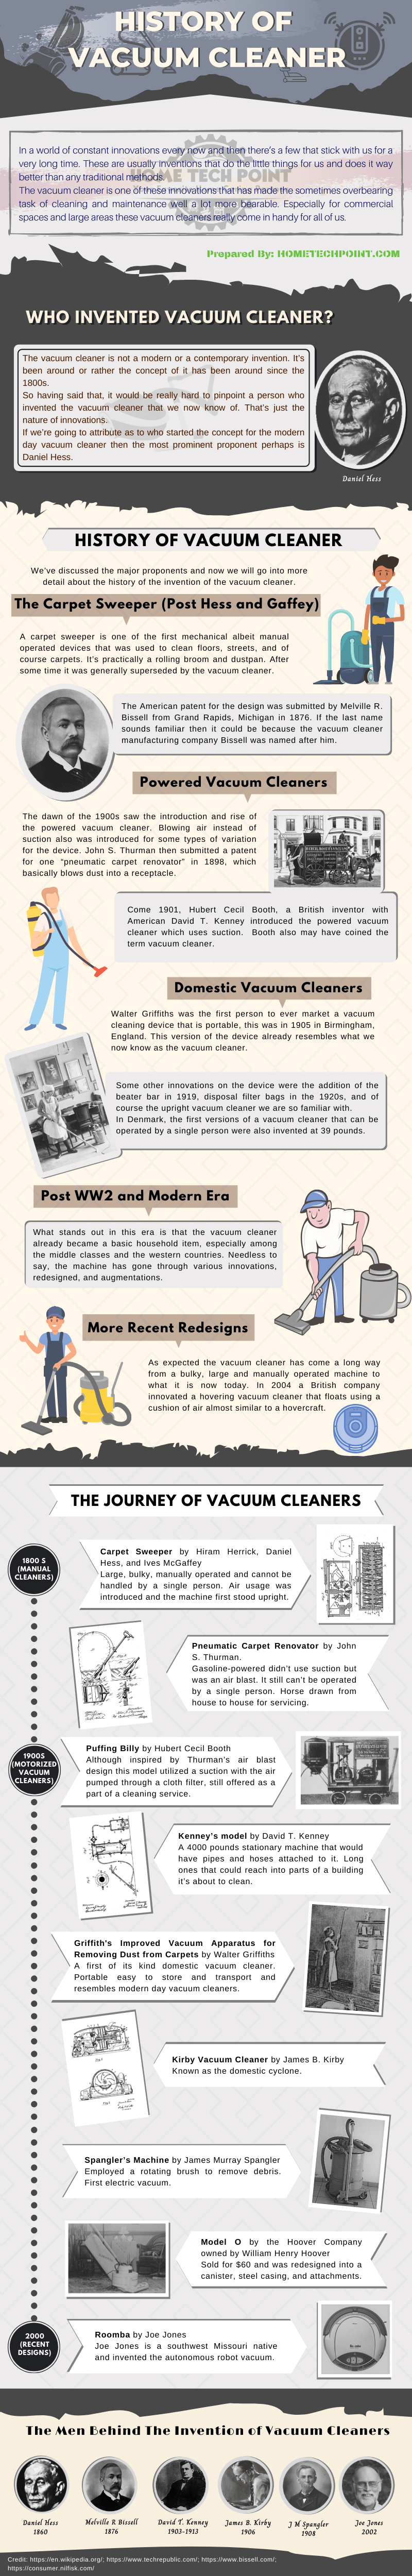 History of Vacuum Cleaner